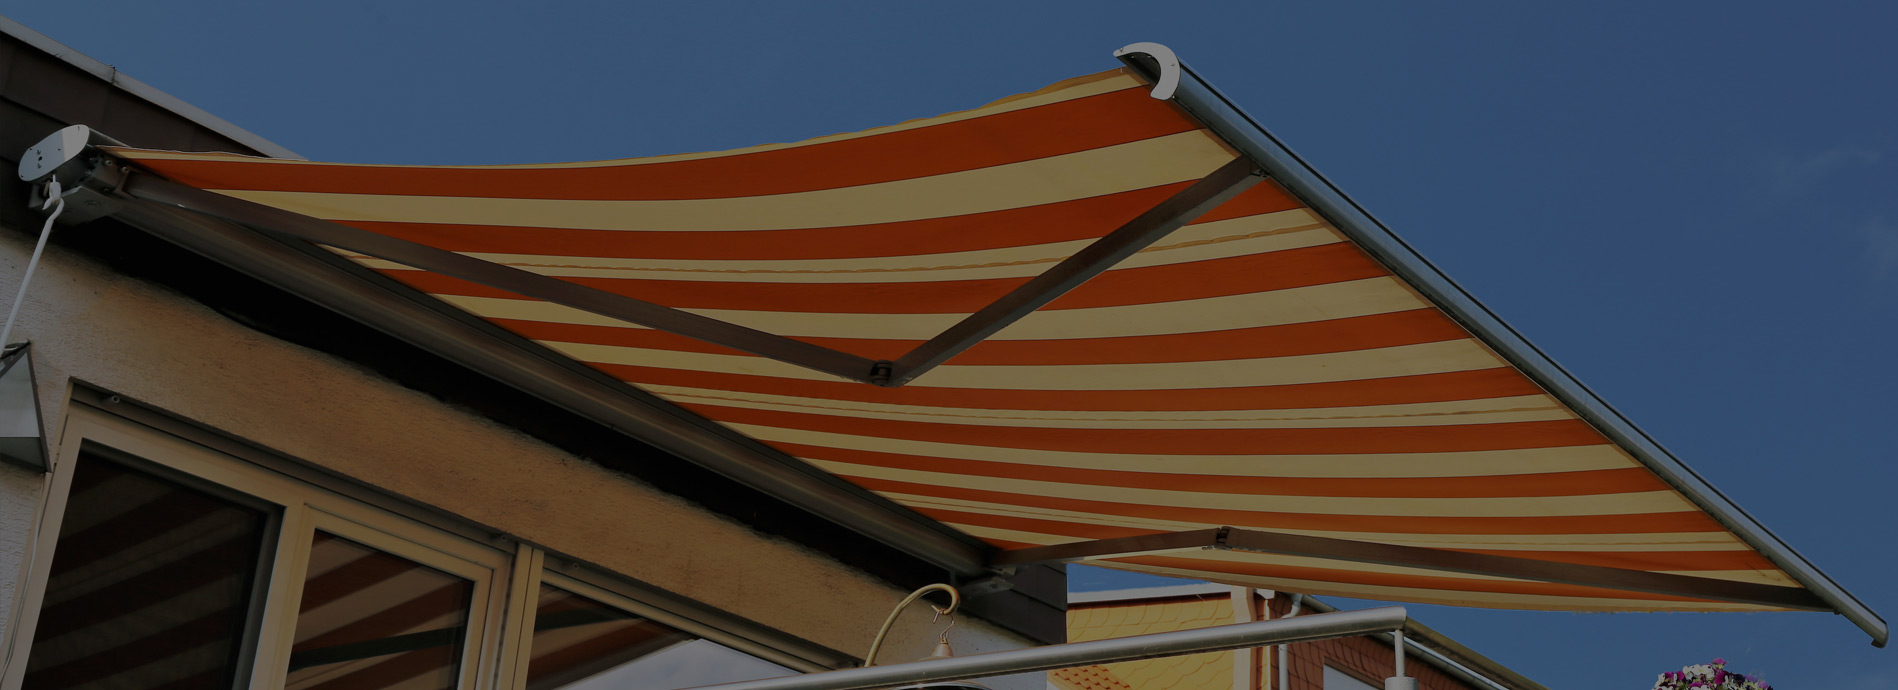 Awnings London